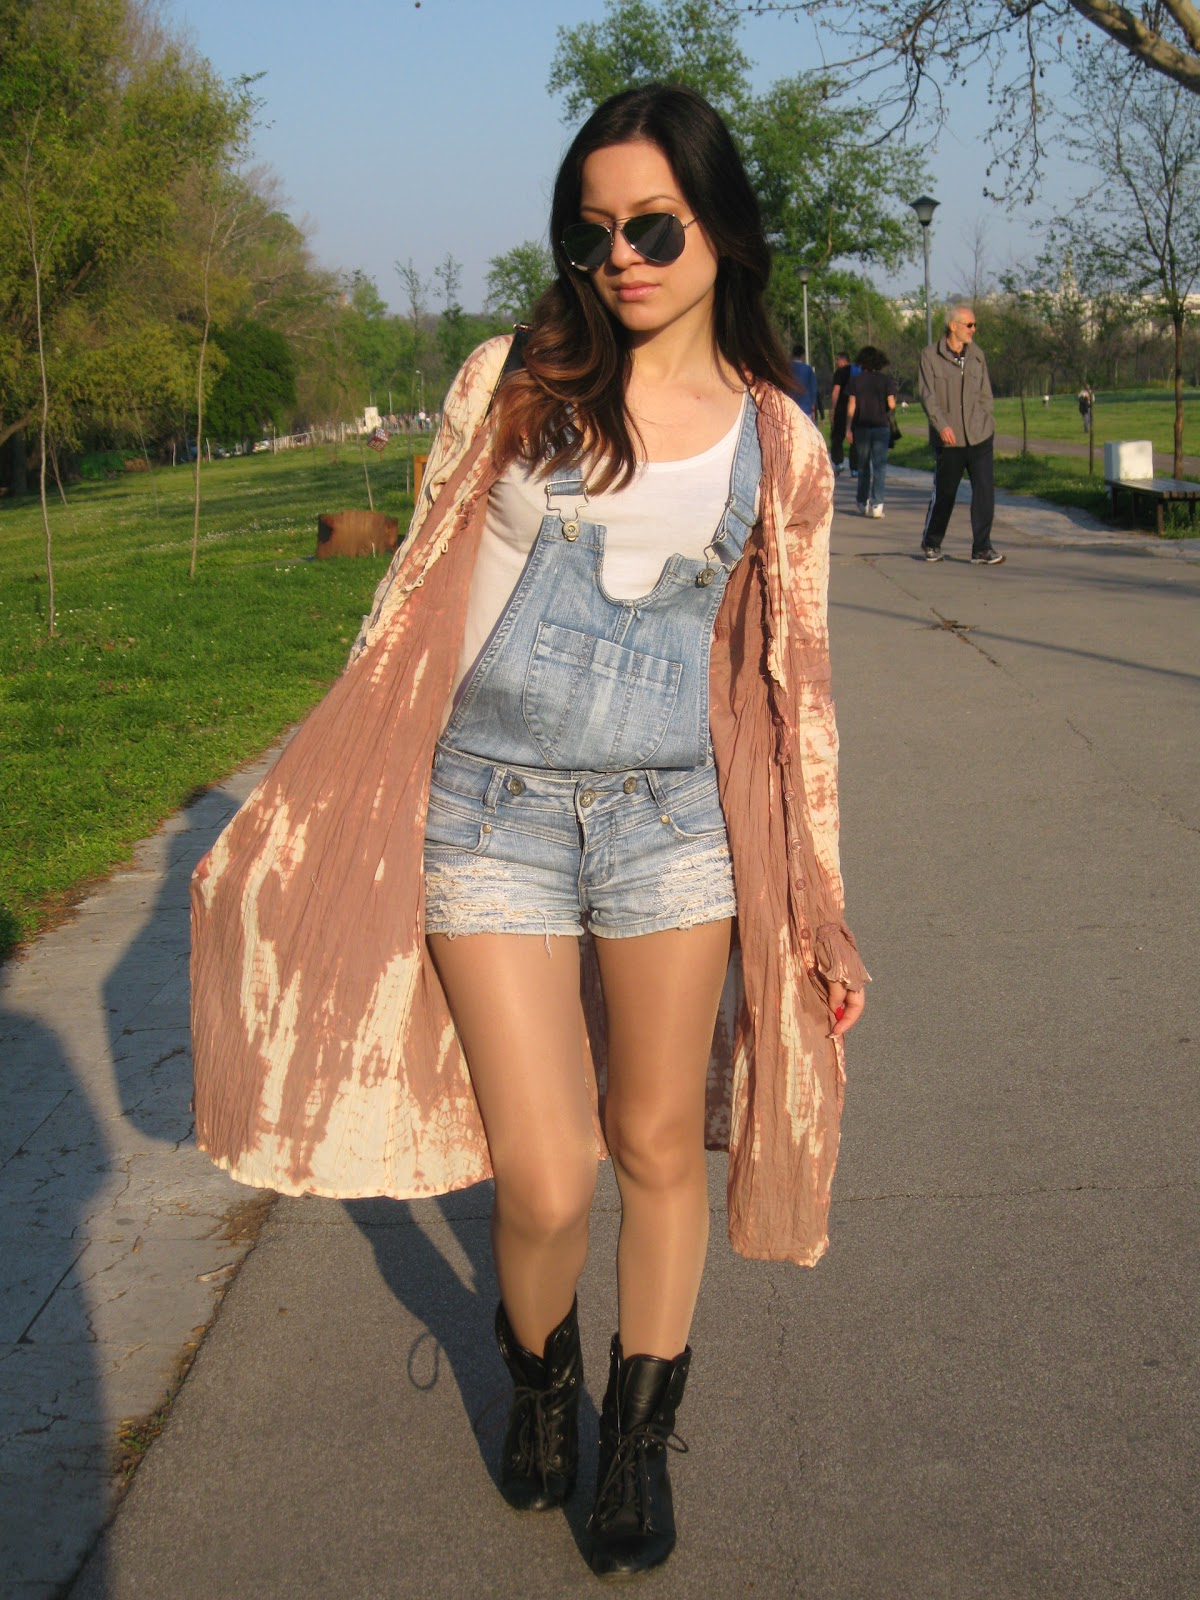 spring festival inspired look, spring festival outfit, denim overall, aviator sunglasses, loose curls, long tie dye cardigan, black boots